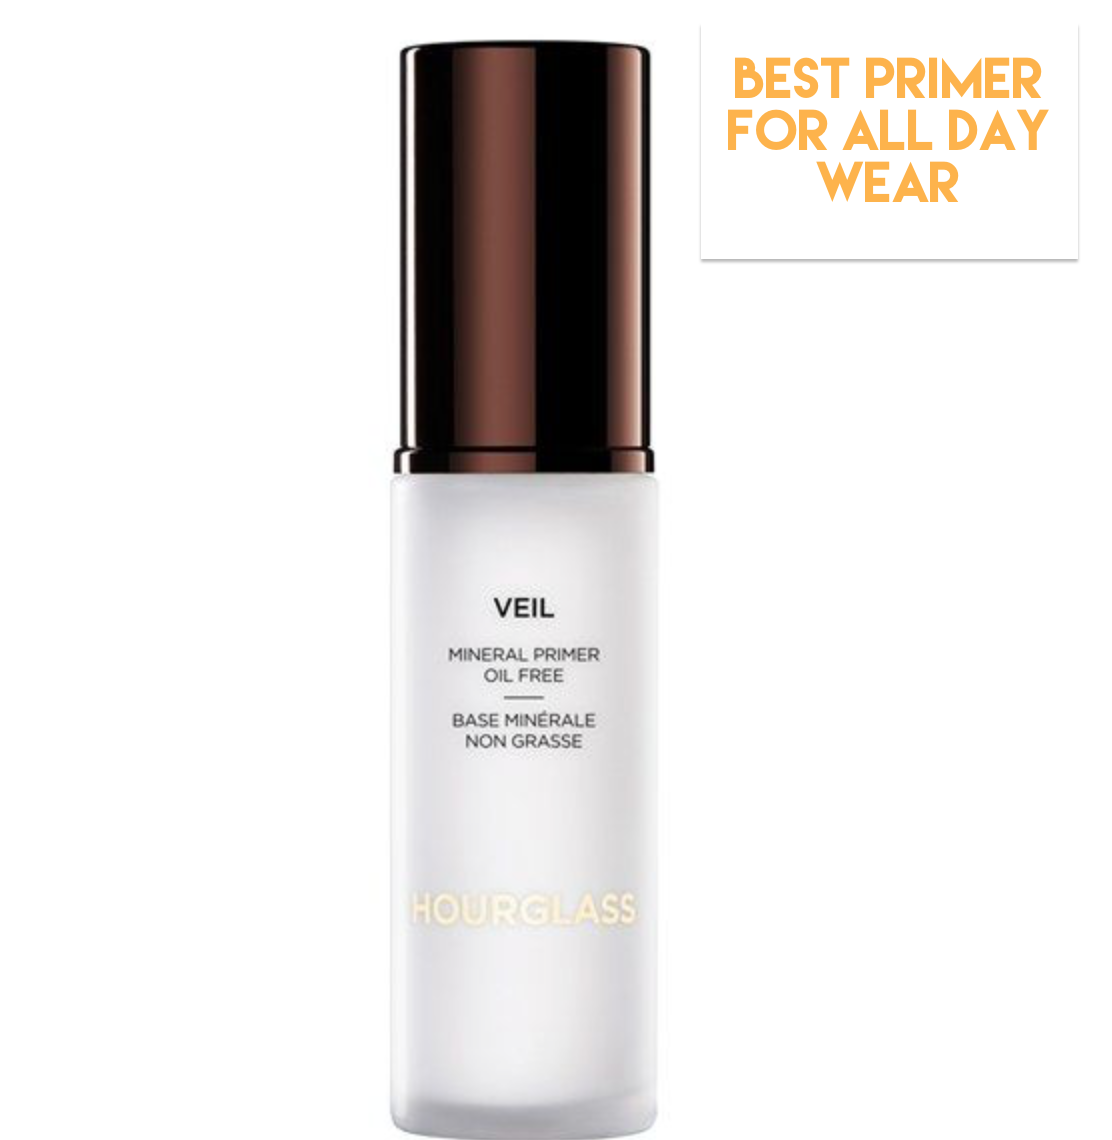 Hourglass Primer Viel Oil Free Mineral Primer. Top